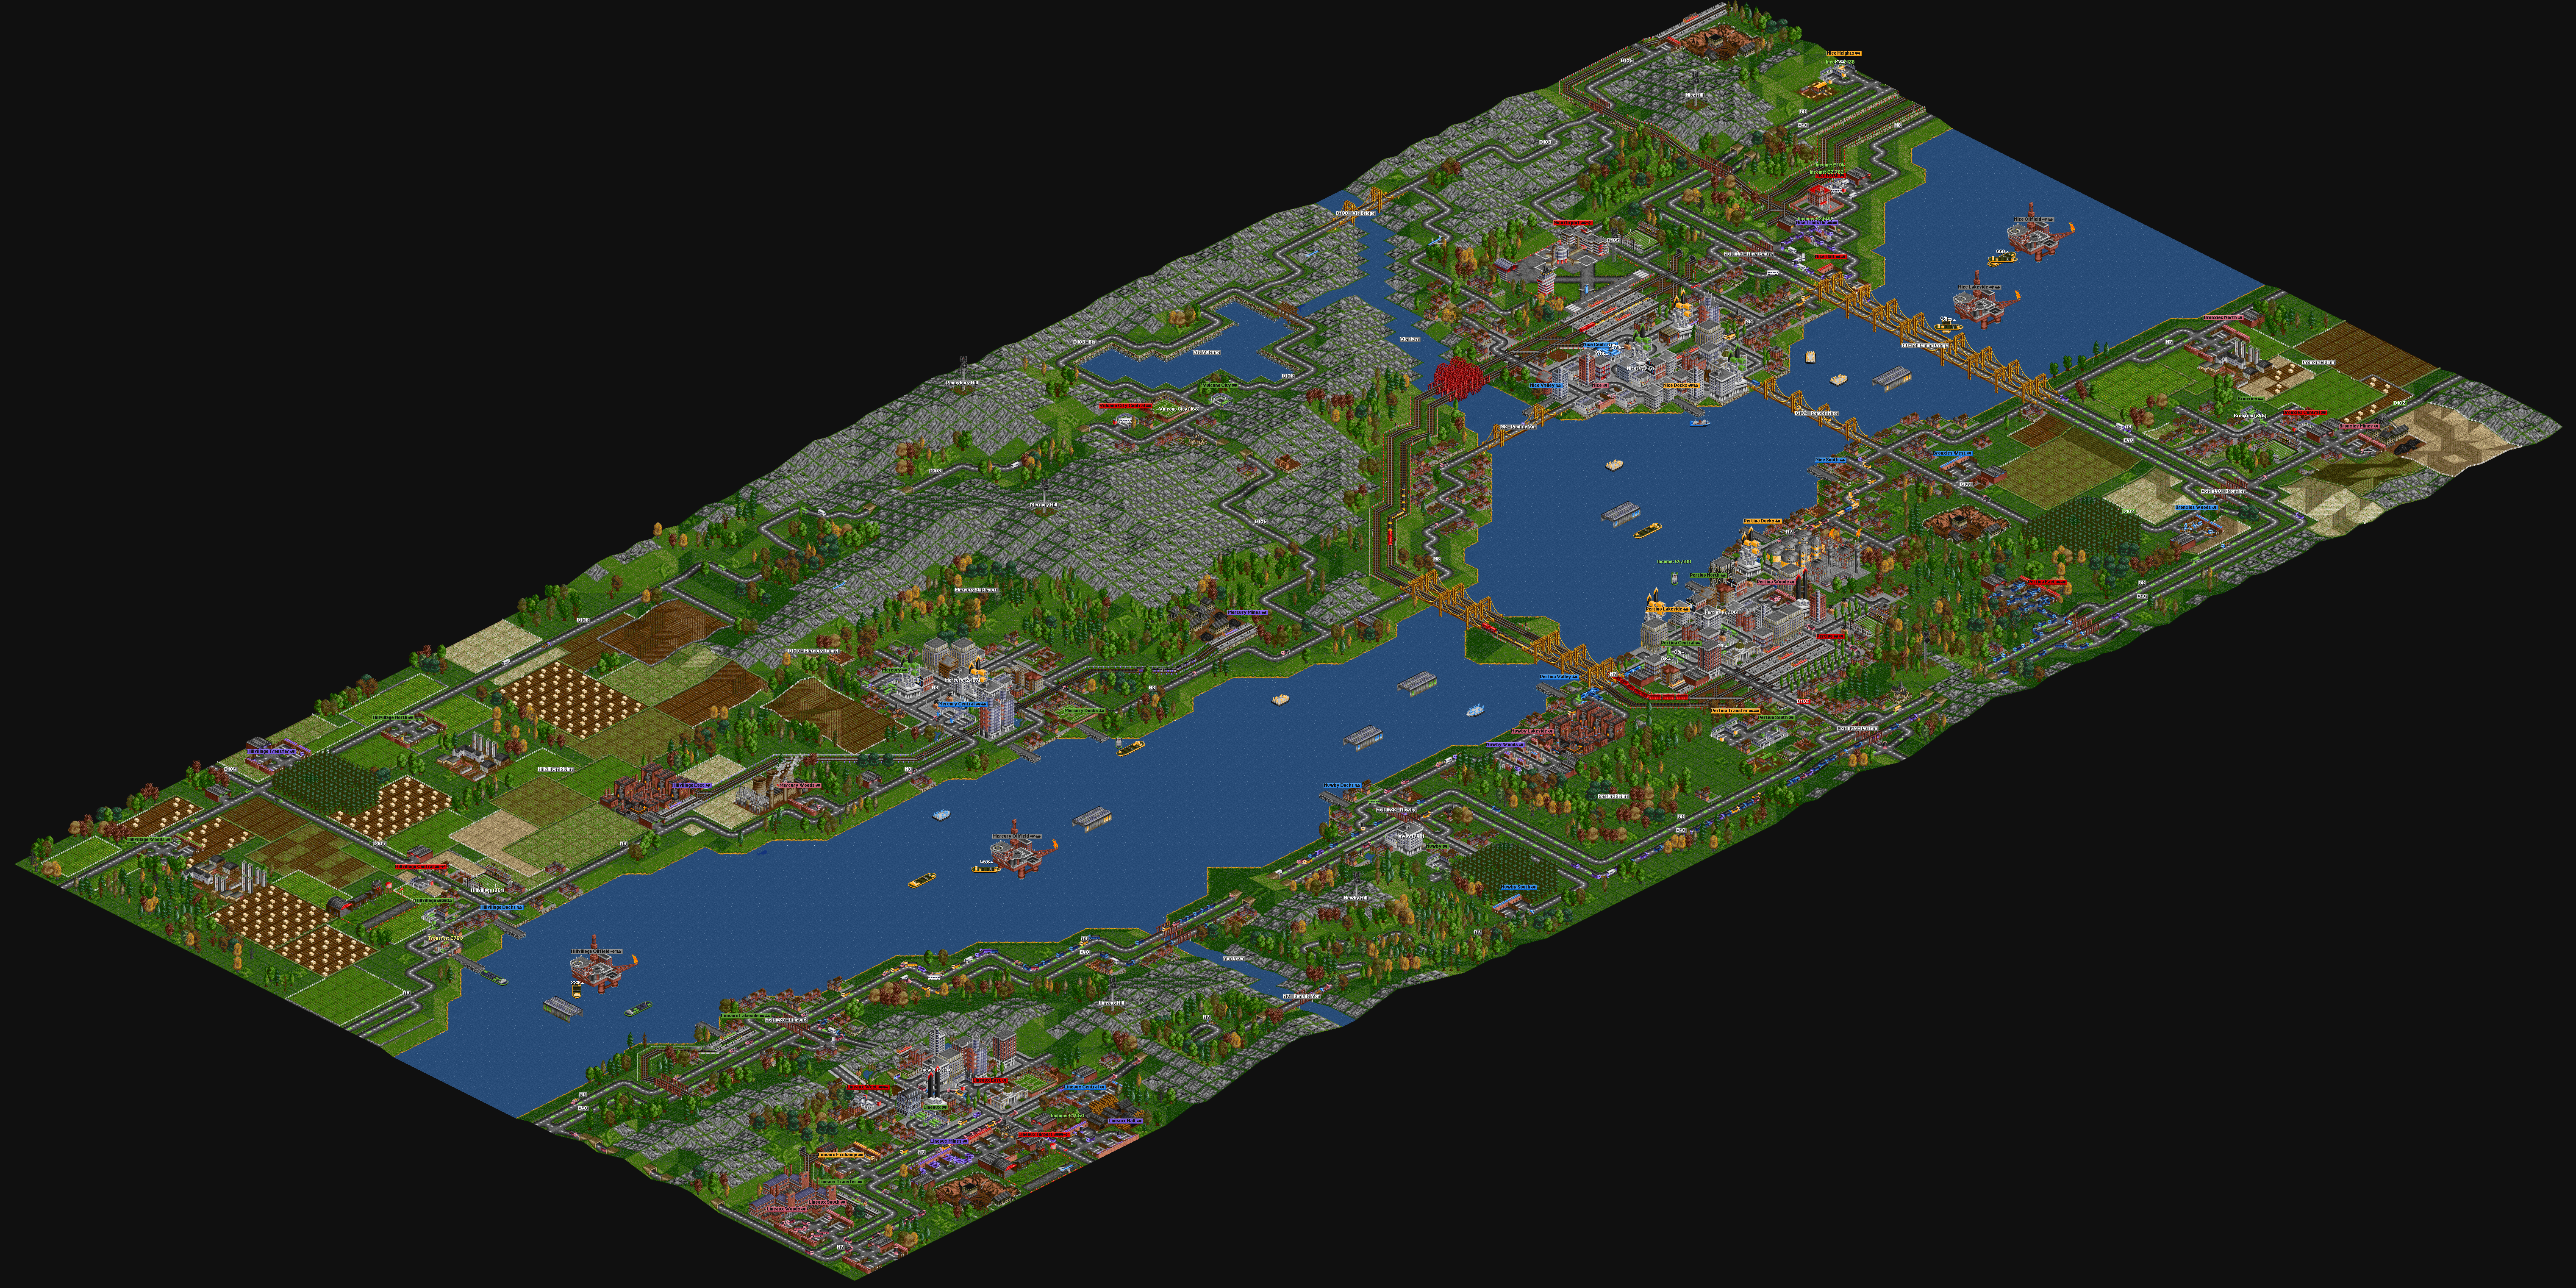 (BIG, 2.9MB) A complete map filled with nice little details.